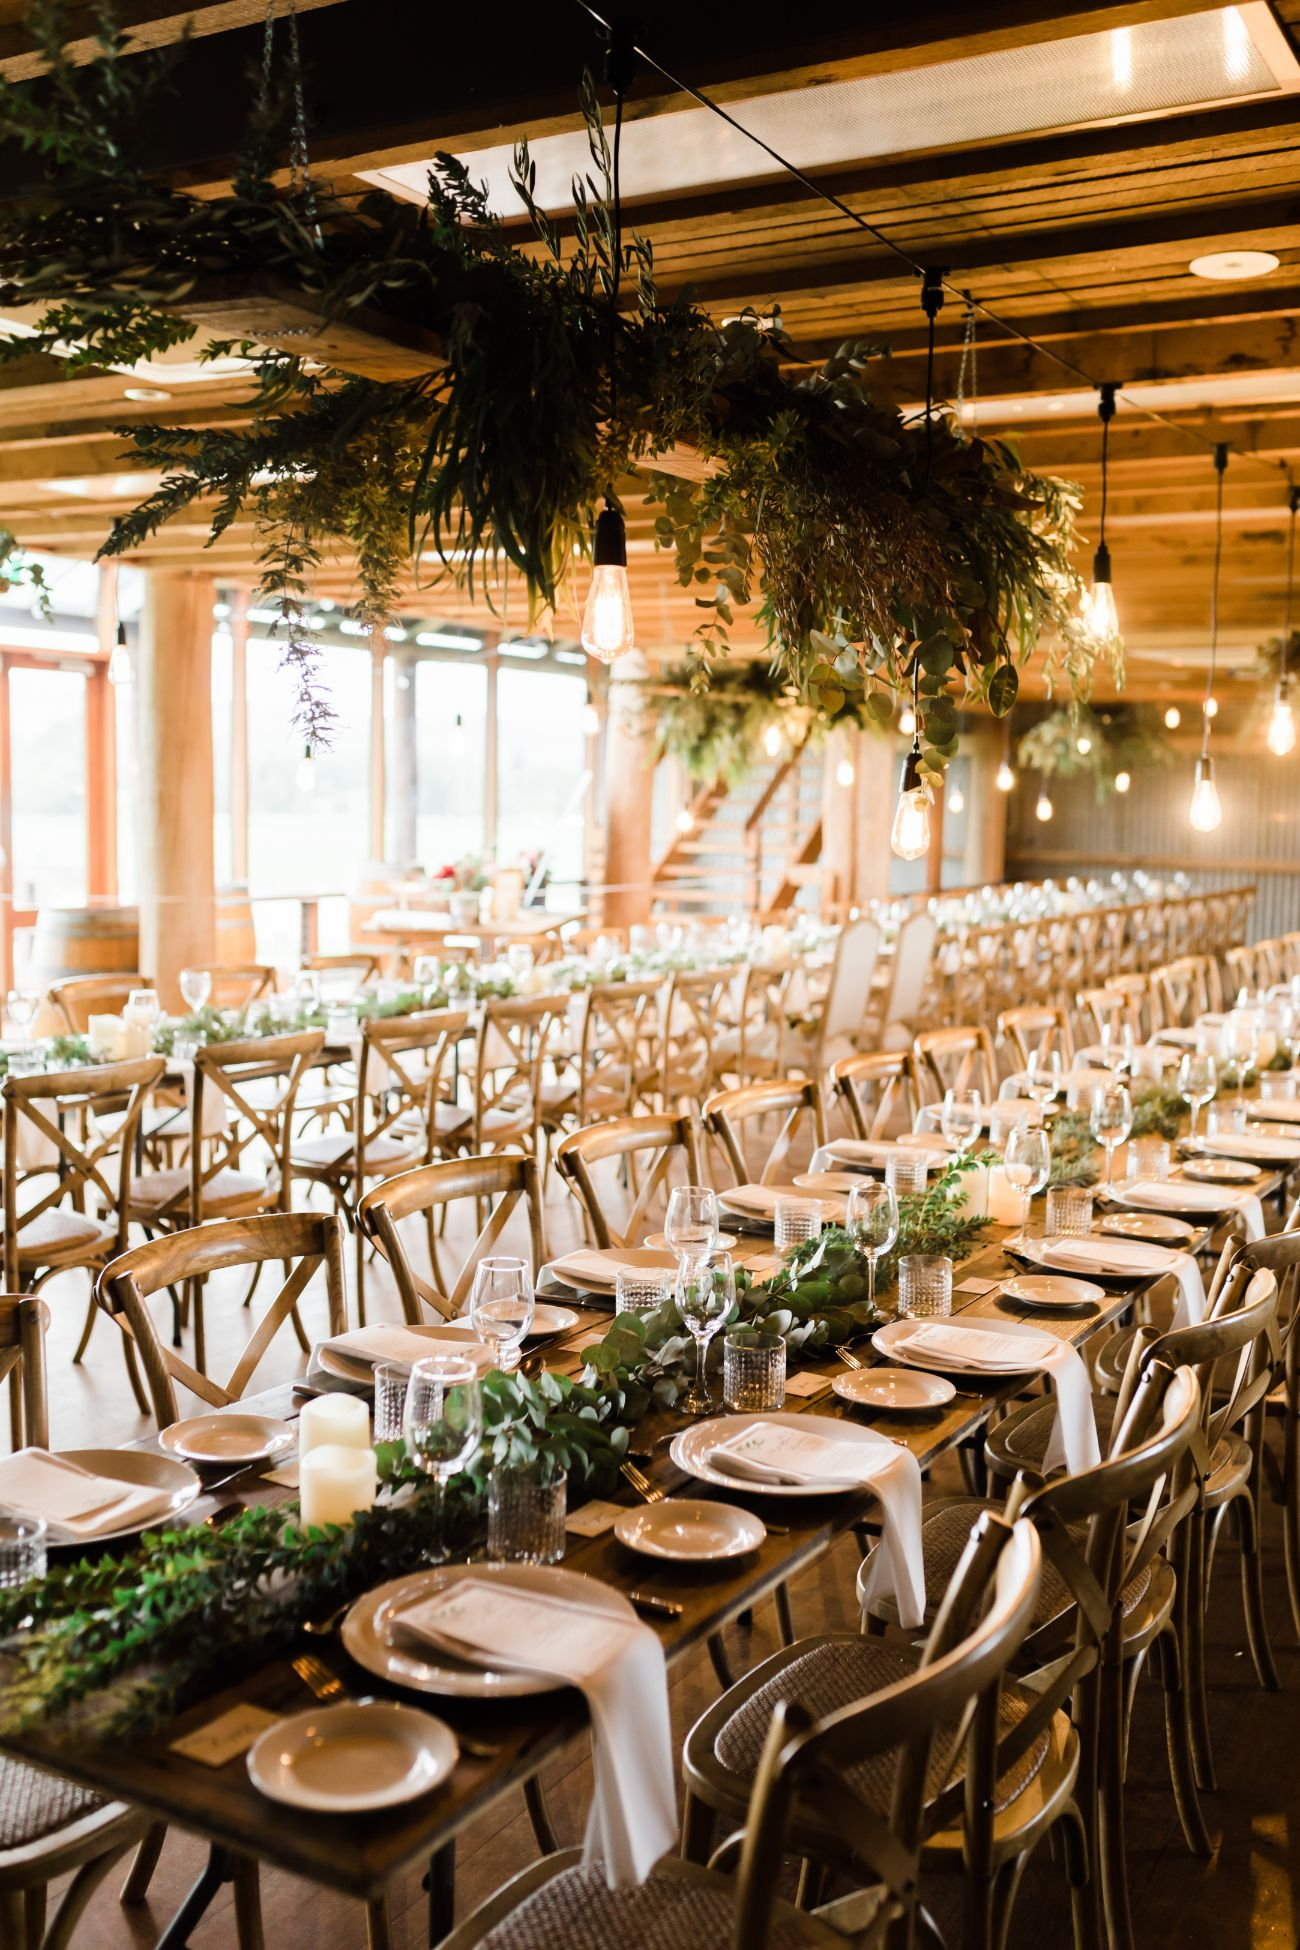 Wedding banquet tables decorated with a foliage runner